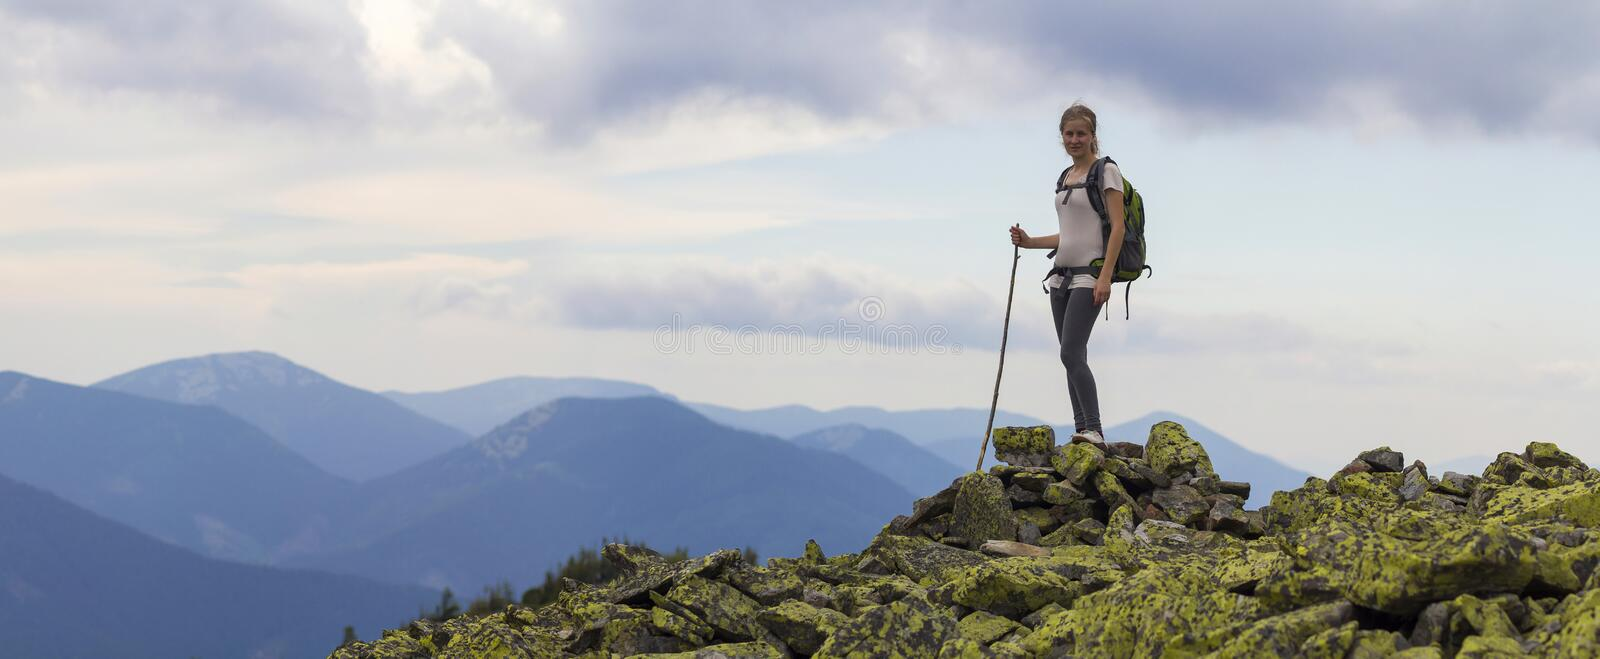 Young slim blond tourist girl with backpack and stick standing on rocky top against bright blue morning sky on foggy mountain rang royalty free stock image